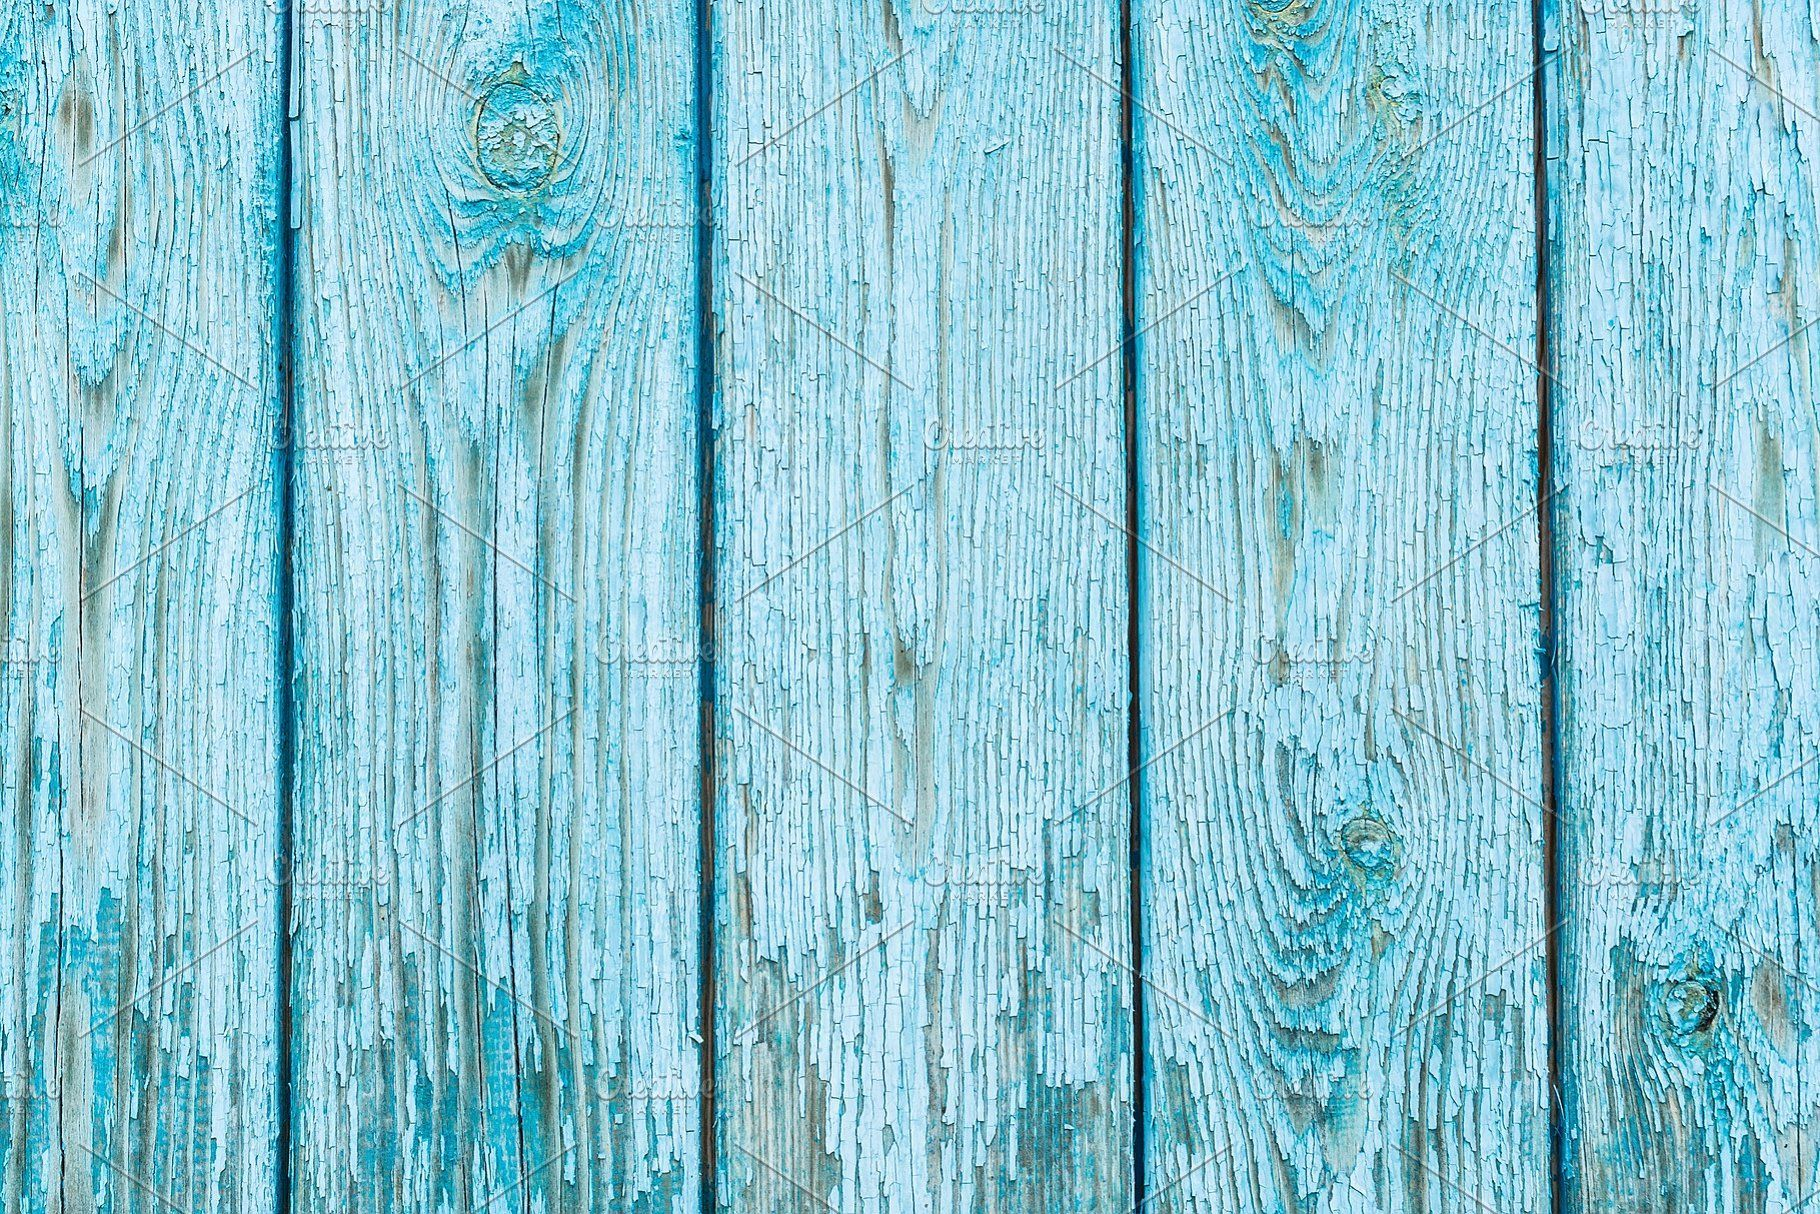 Blue Wood Texture Blue Wood Wood Texture Turquoise Wallpaper